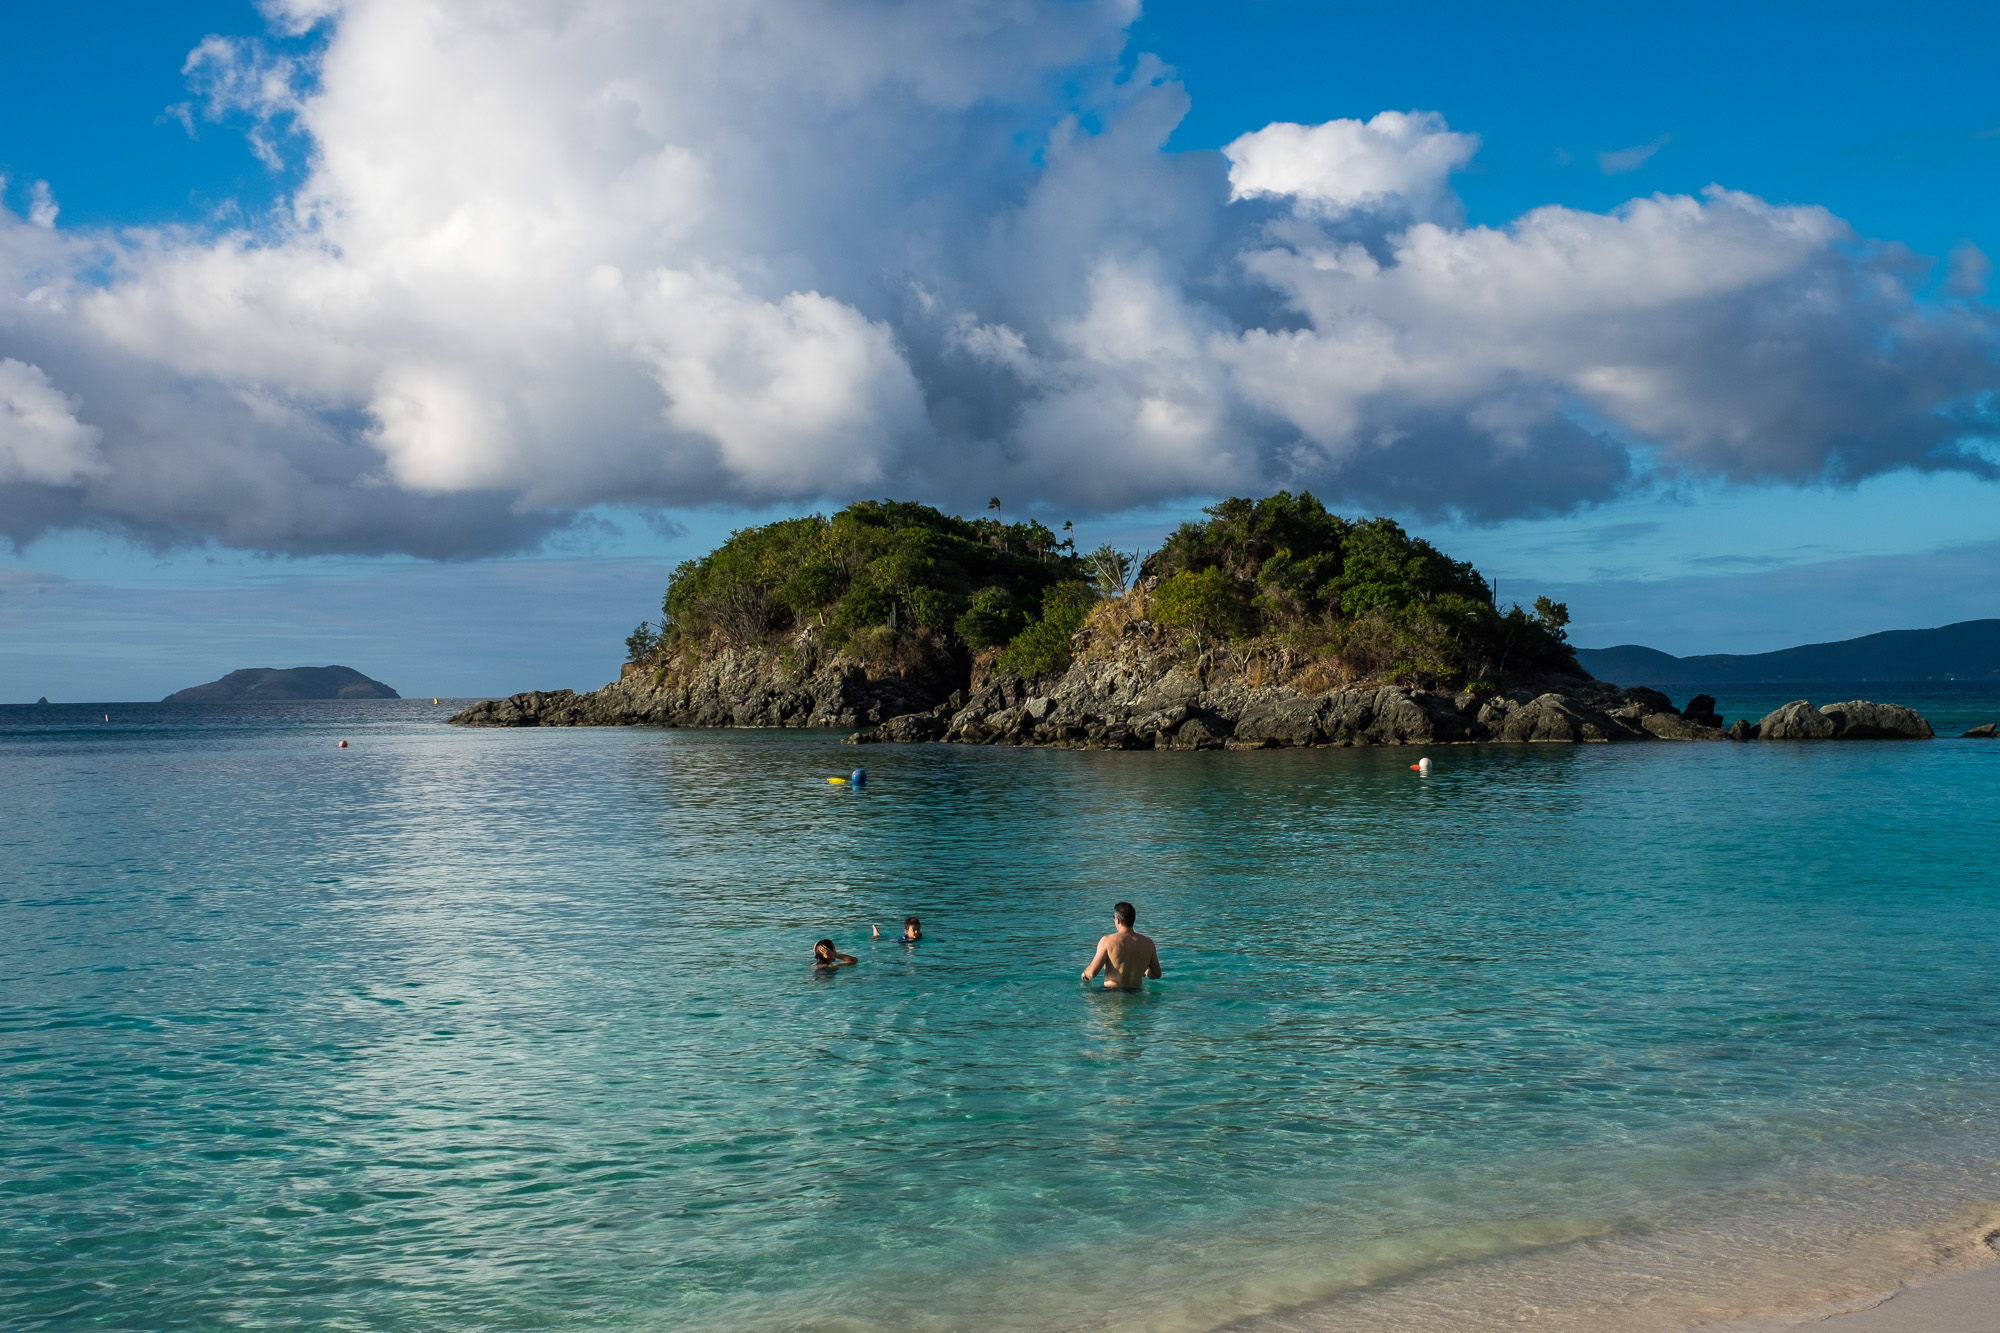 The underwater snorkel trail started right by those outer islands.